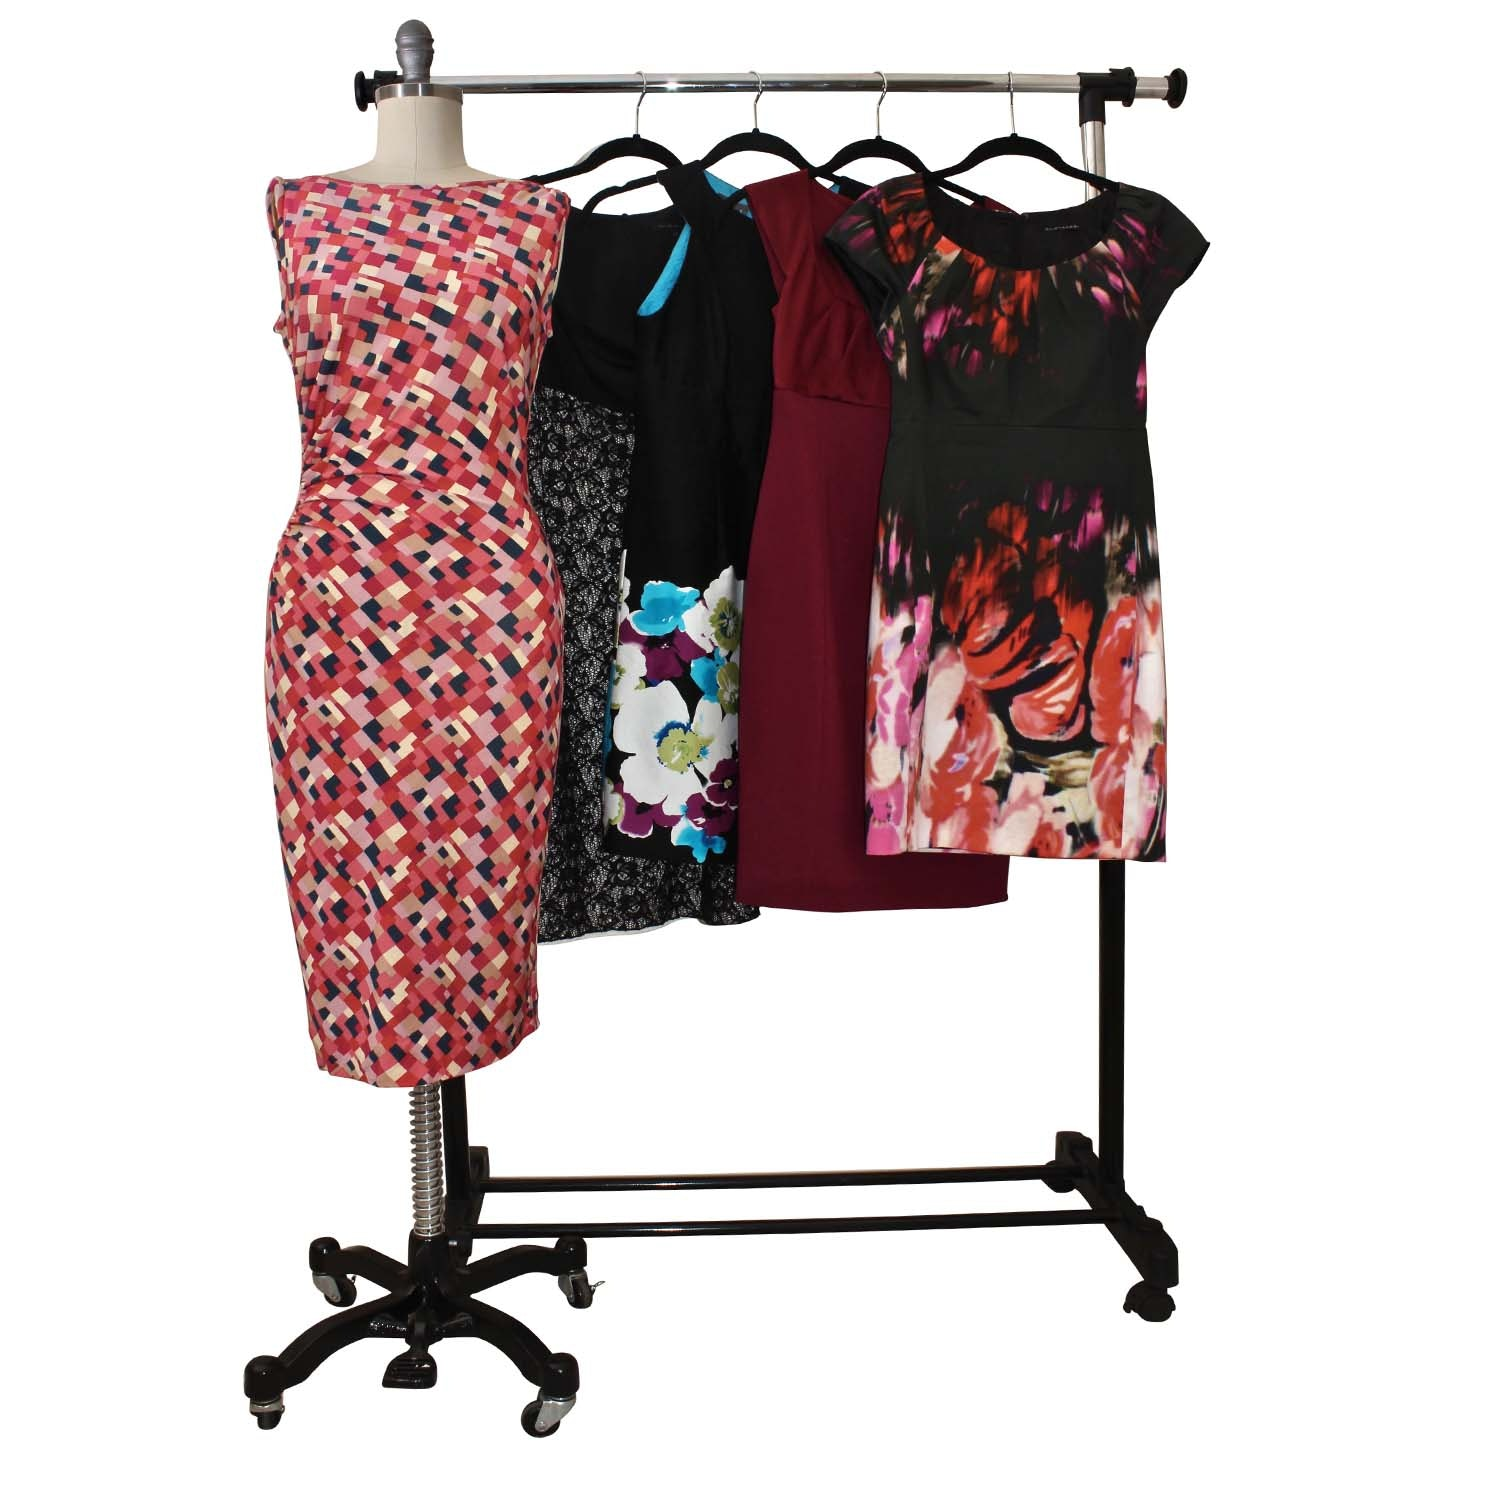 Cocktail Dresses Including Diane Von Furstenburg, Elie Tahara and David Meister